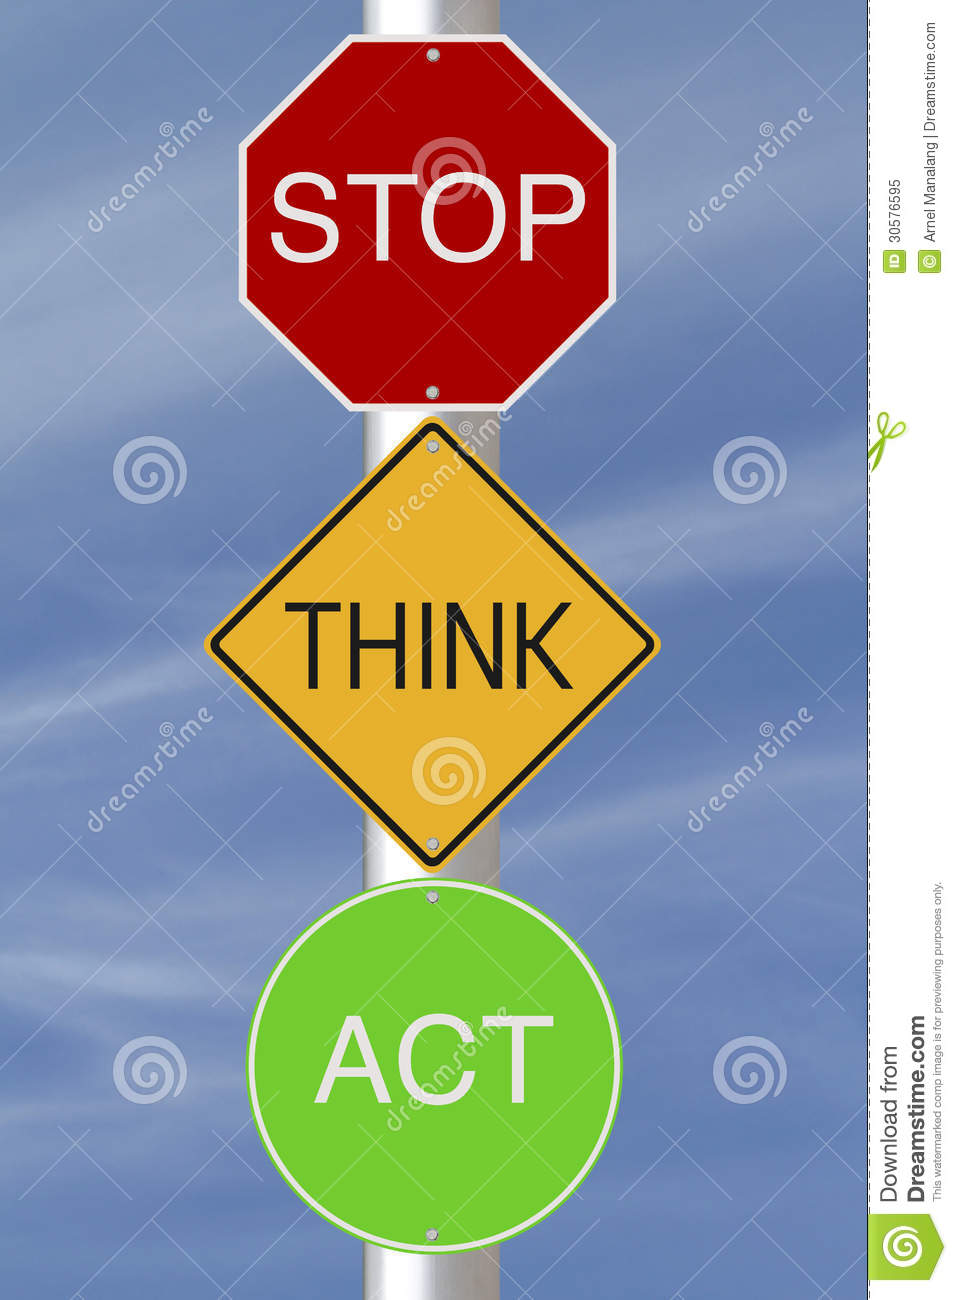 Stop Think Act Royalty Free Stock Photo - Image: 30576595